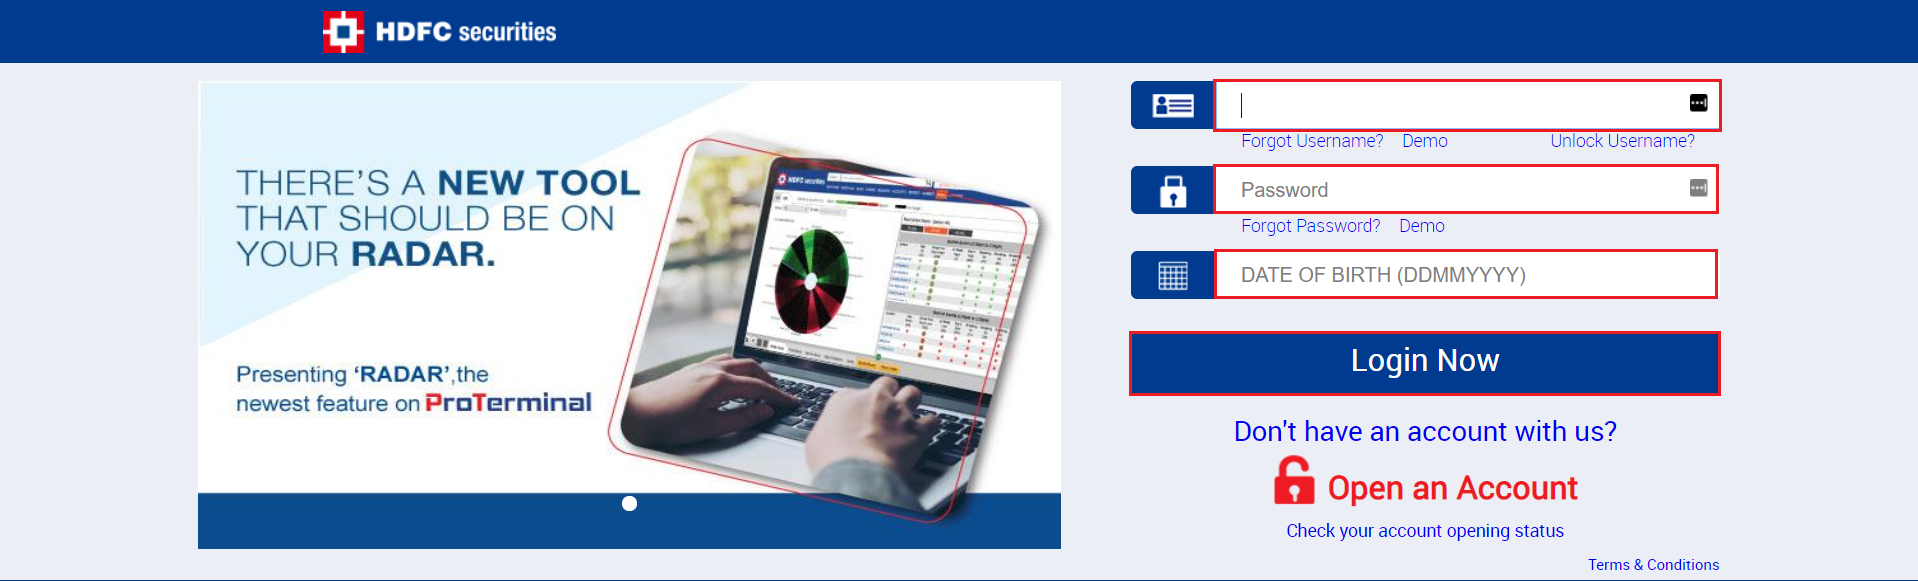 HDFC Securities - Login Page